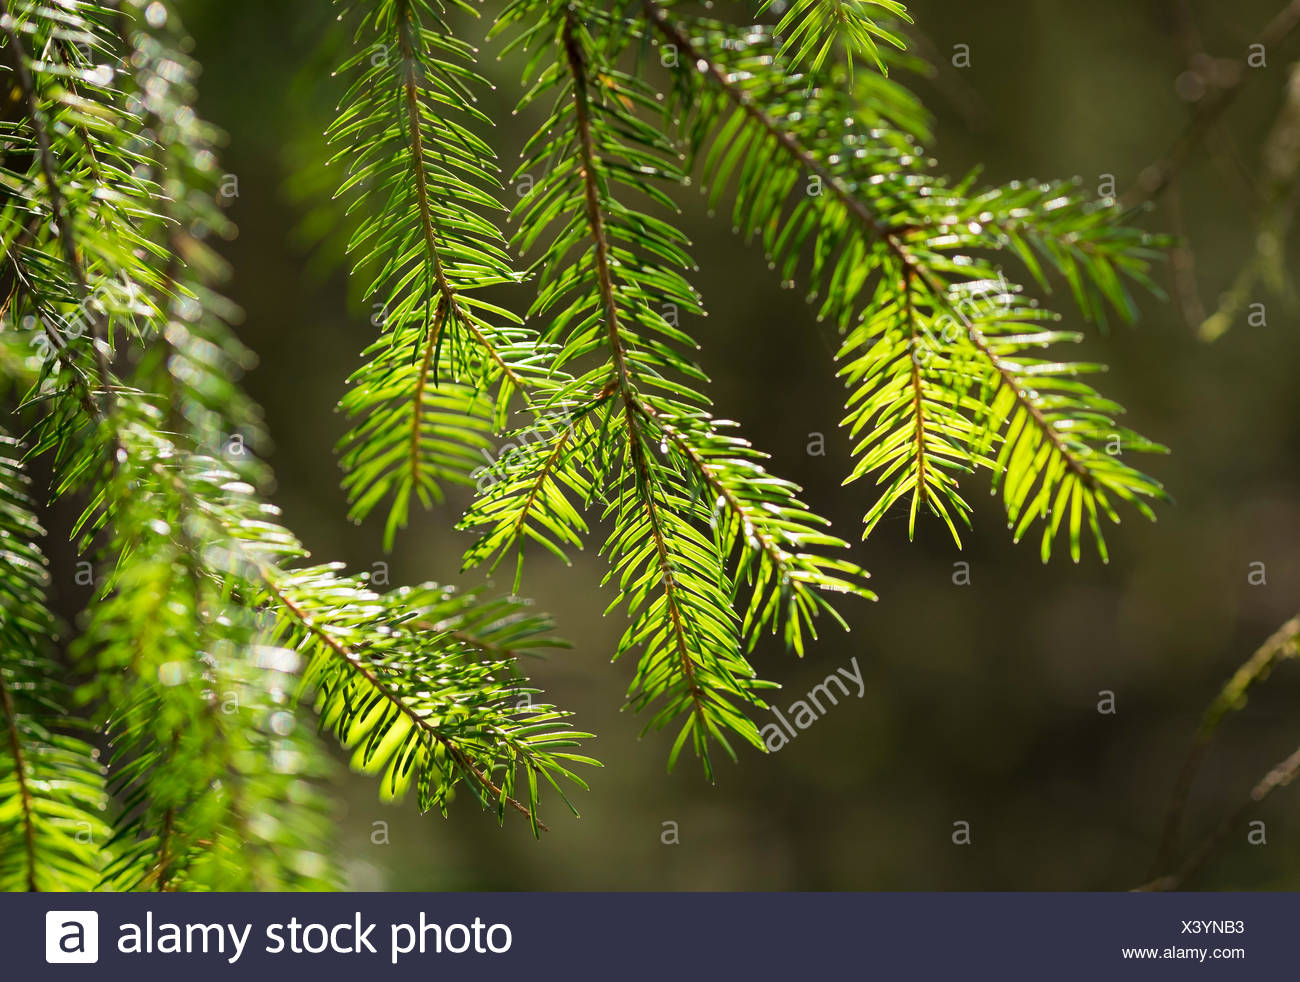 Spruce tree branches (Picea abies), Bavaria, Germany - Stock Image